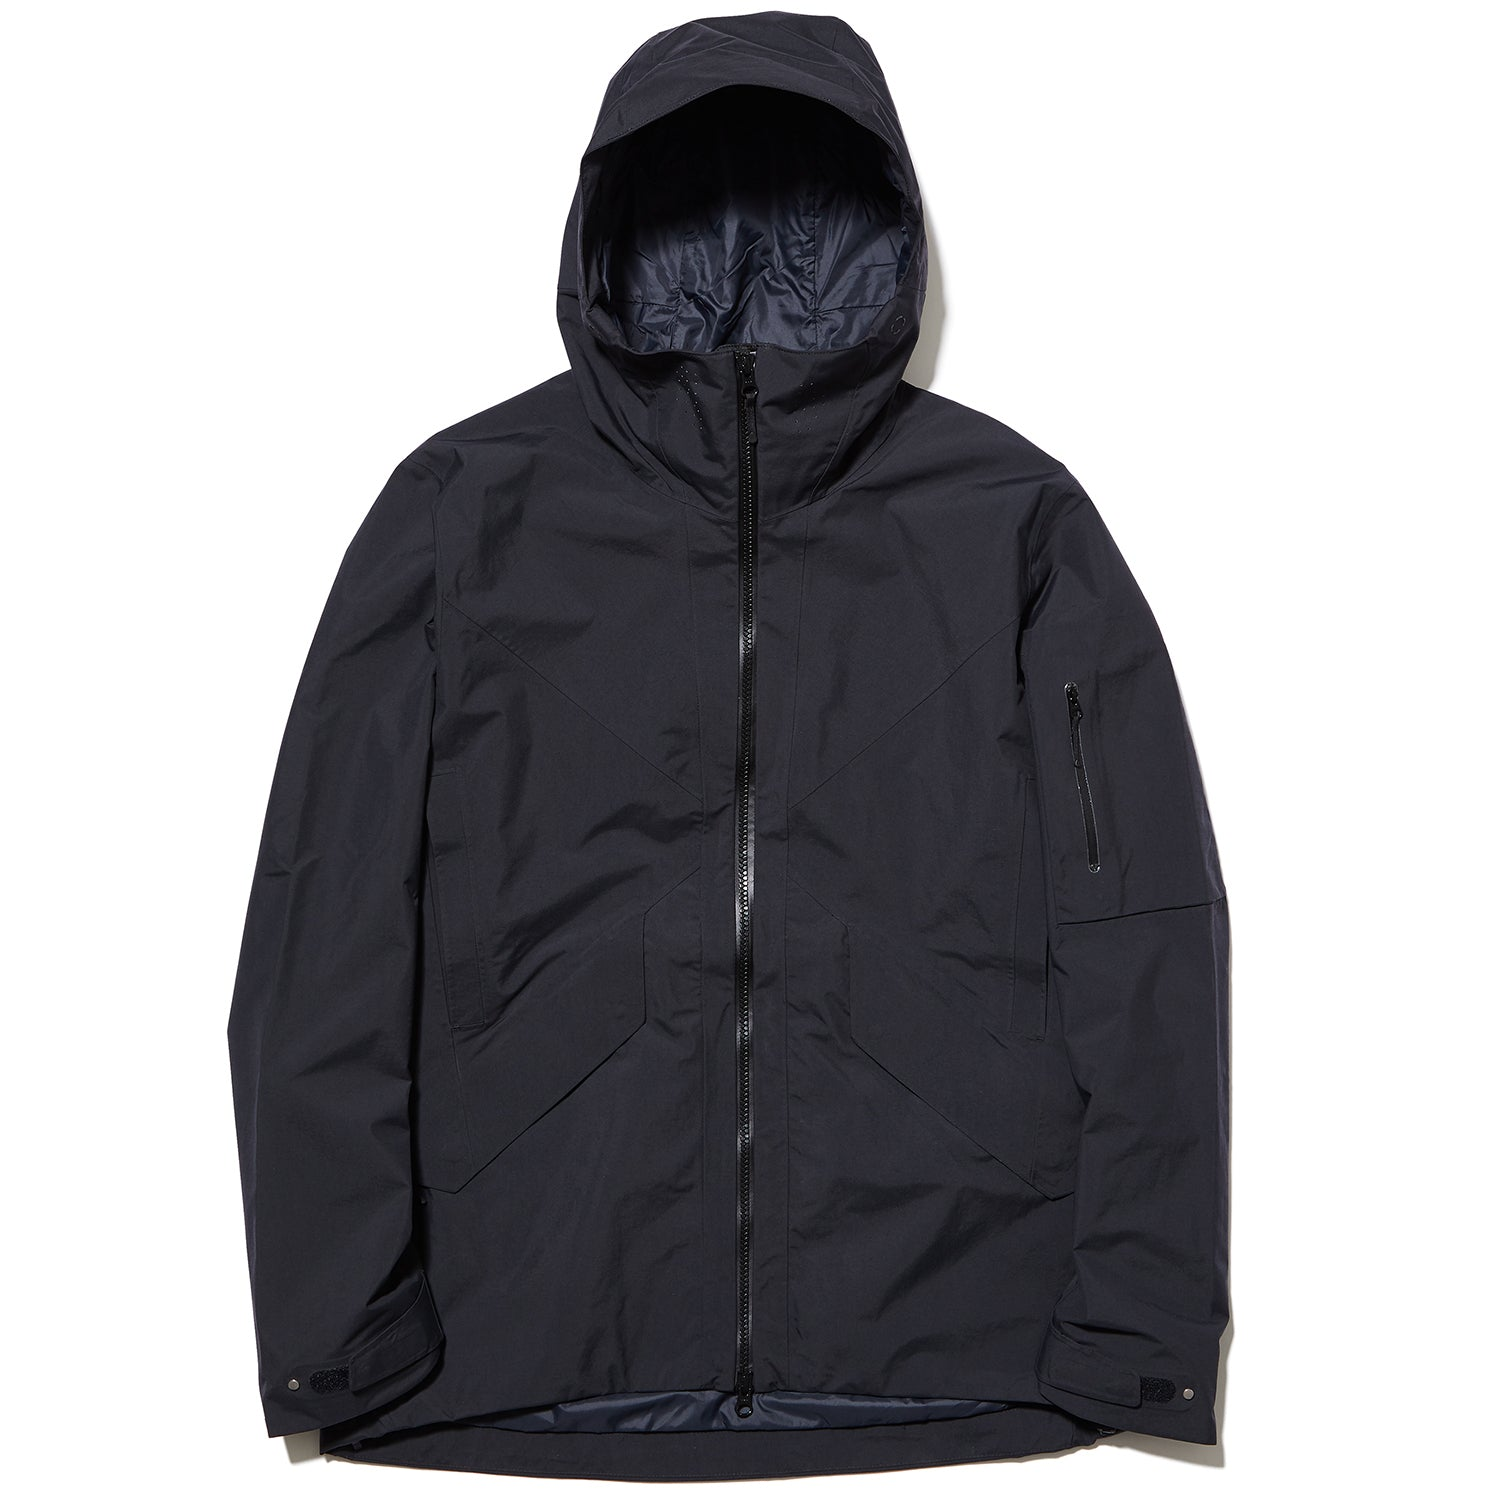 Mountain Jacket